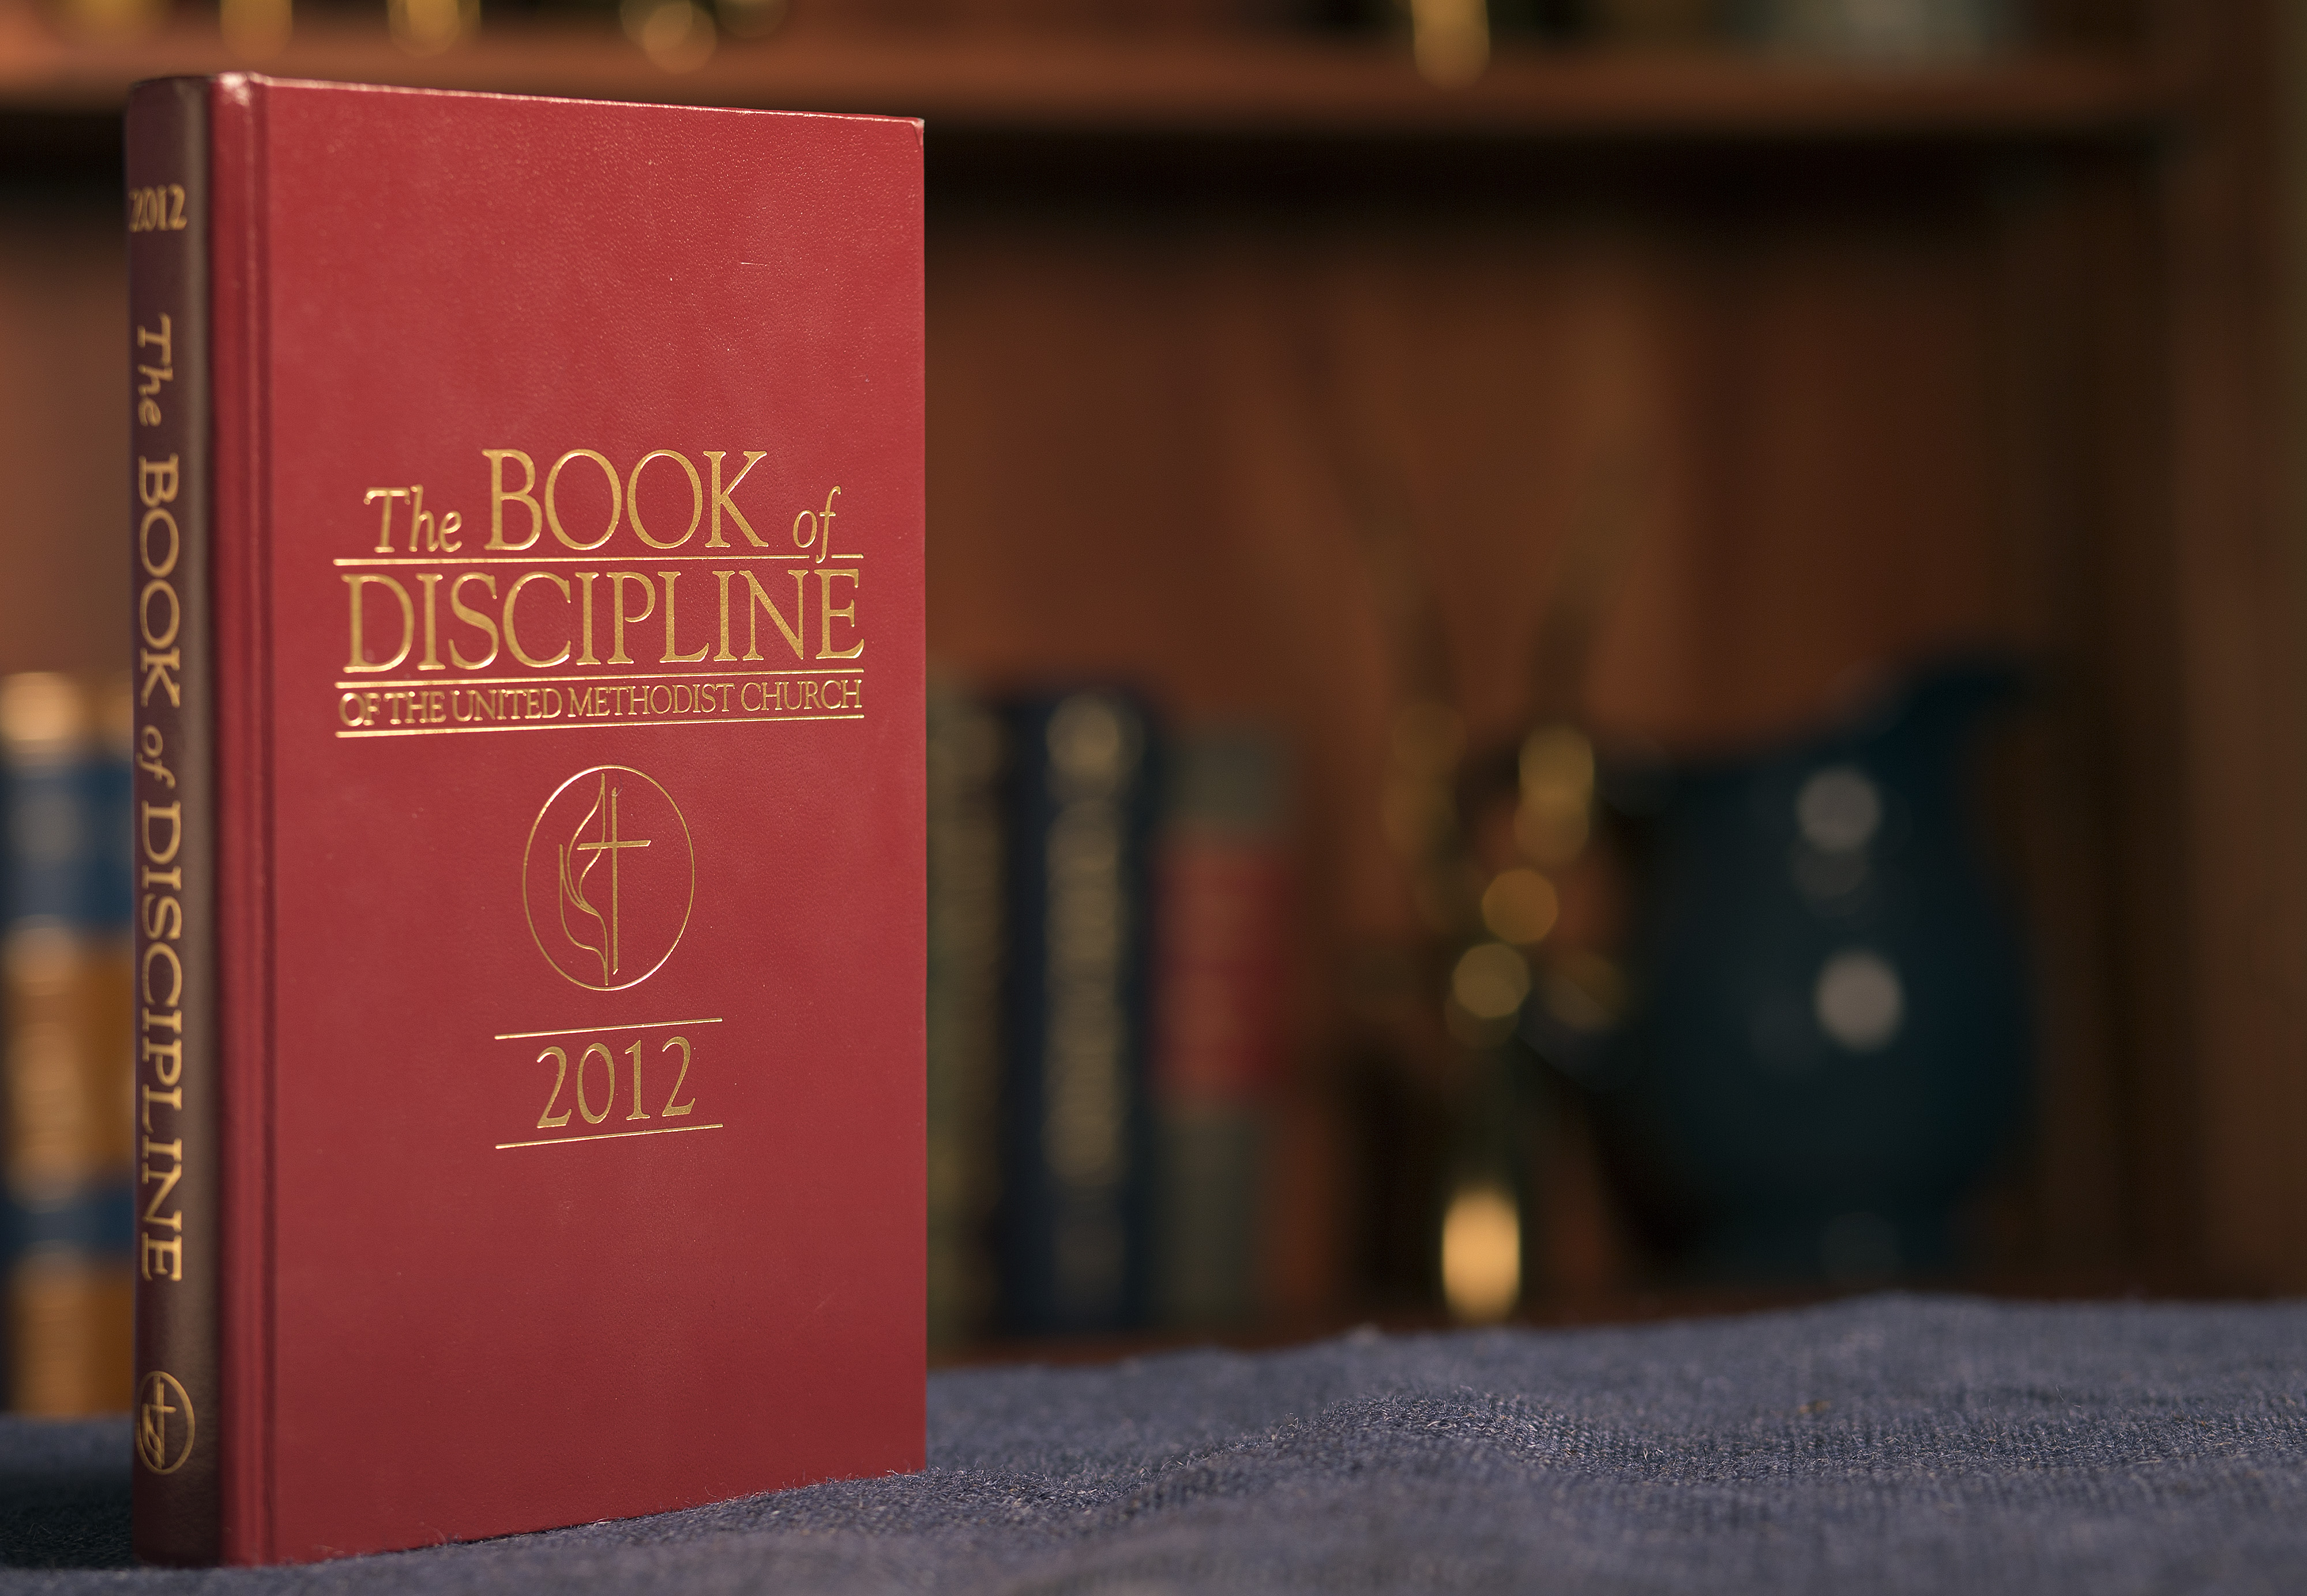 The statements in the Book of Discipline regarding homosexuality have sparked debate at each General Conference since 1972. Photo by Mike DuBose, United Methodist Communications